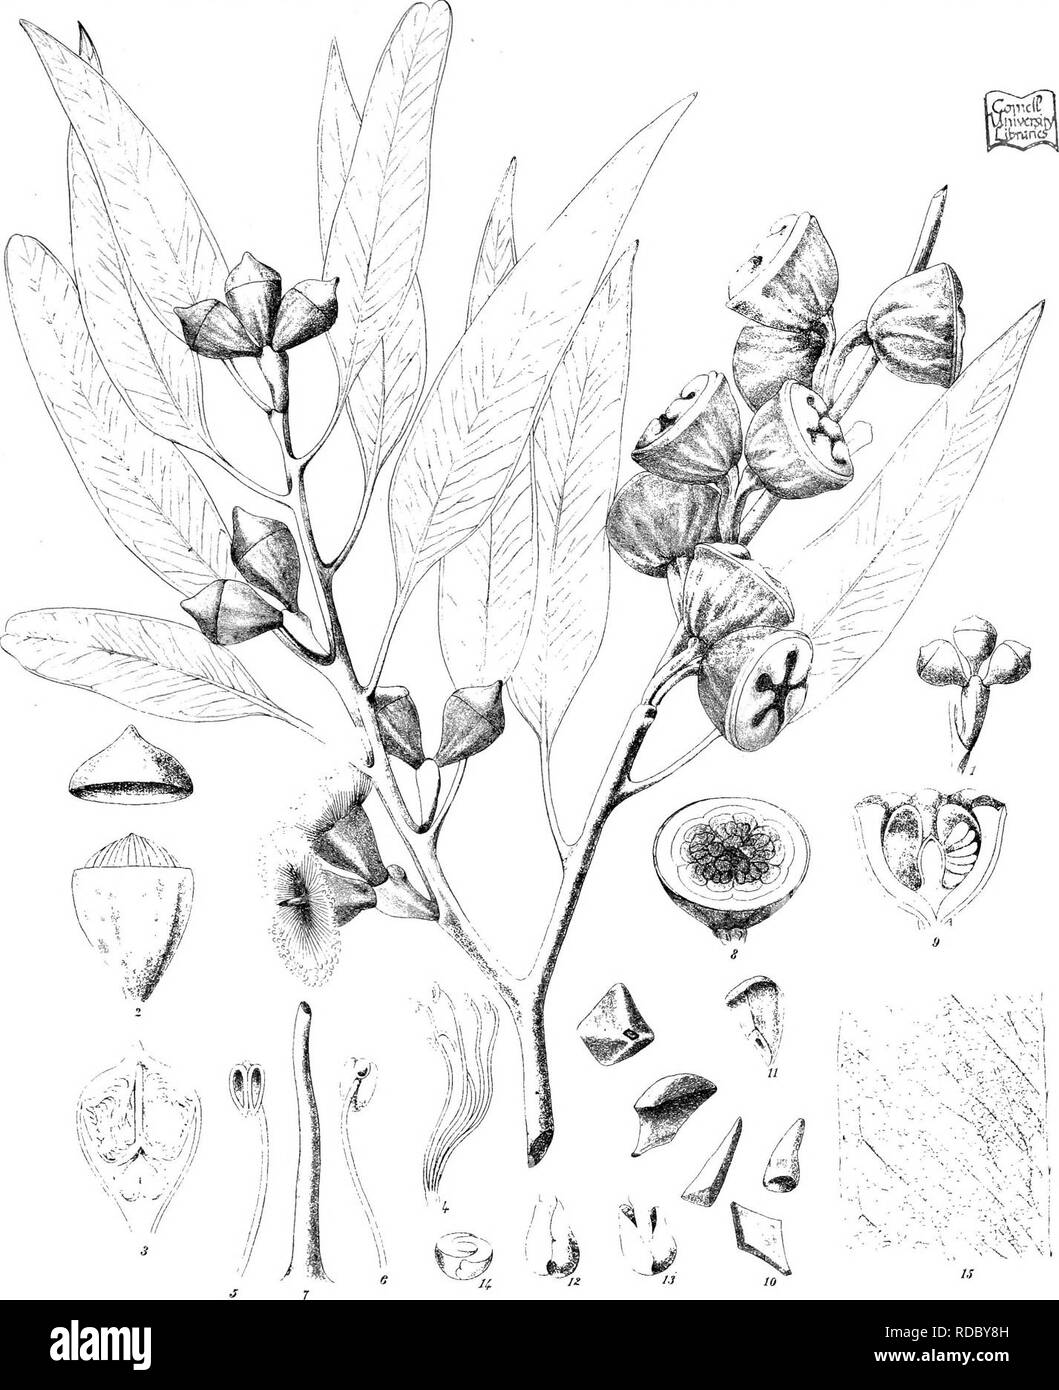 . Eucalyptographia. A descriptive atlas of the eucalypts of Australia and the adjoining islands;. Eucalyptus; Botany. Tbdt del. C.Troedel i C'litl, F. v-.M. direzii. Slsam Lillio Got. Pnntug Office,Msll 15!iM!^te aiBf lis^lii, FvM.. Please note that these images are extracted from scanned page images that may have been digitally enhanced for readability - coloration and appearance of these illustrations may not perfectly resemble the original work.. Mueller, Ferdinand von, 1825-1896. Melbourne, J. Ferres, Govt. Print; [etc. ,etc. ] - Stock Image